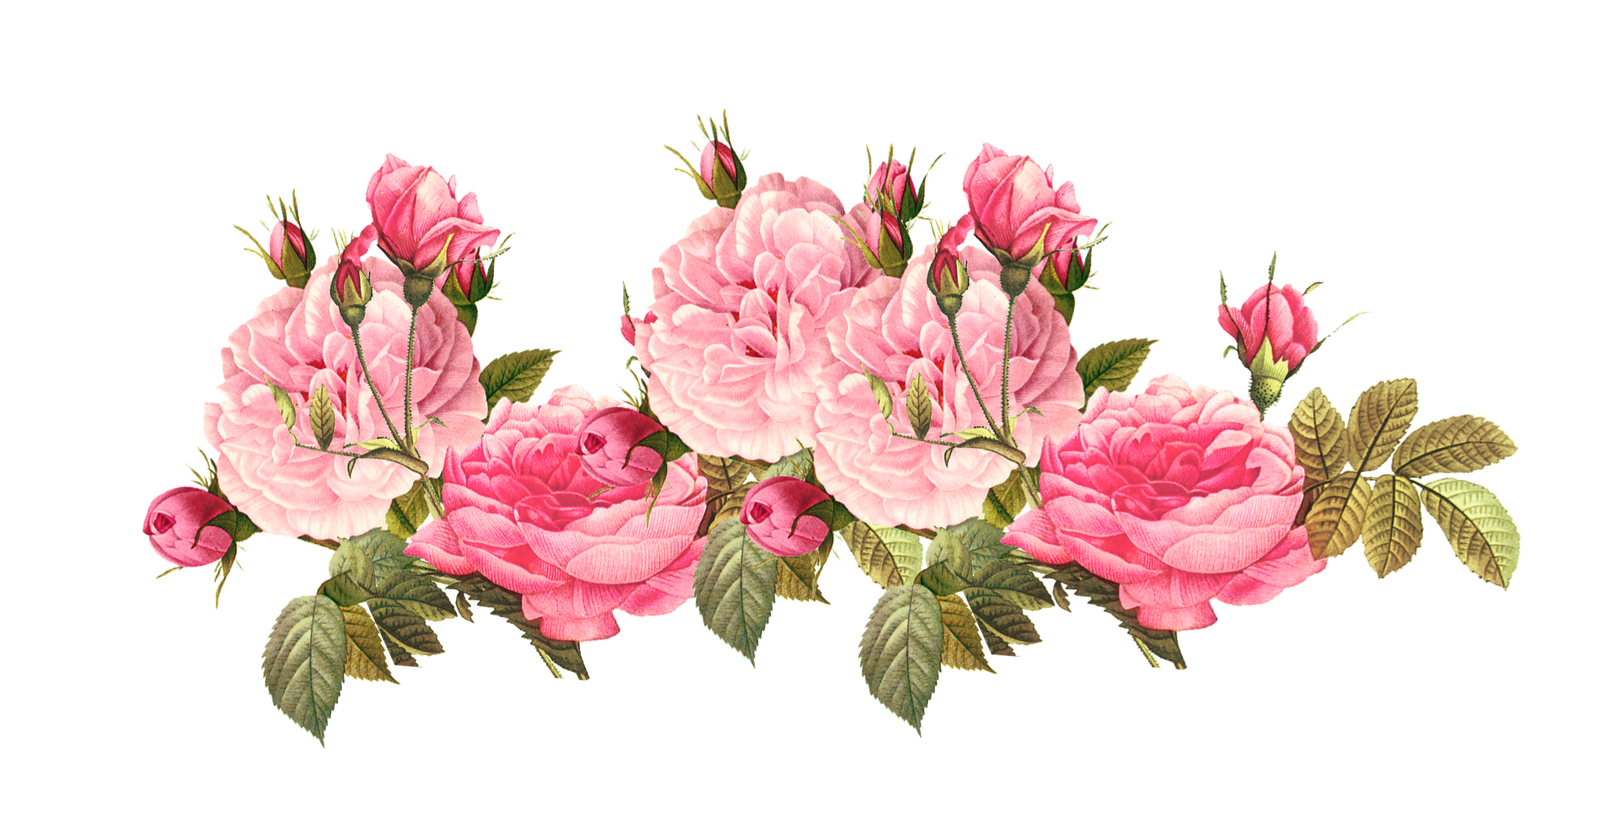 Flowers flower flor floral. Flores tumblr png banner royalty free library